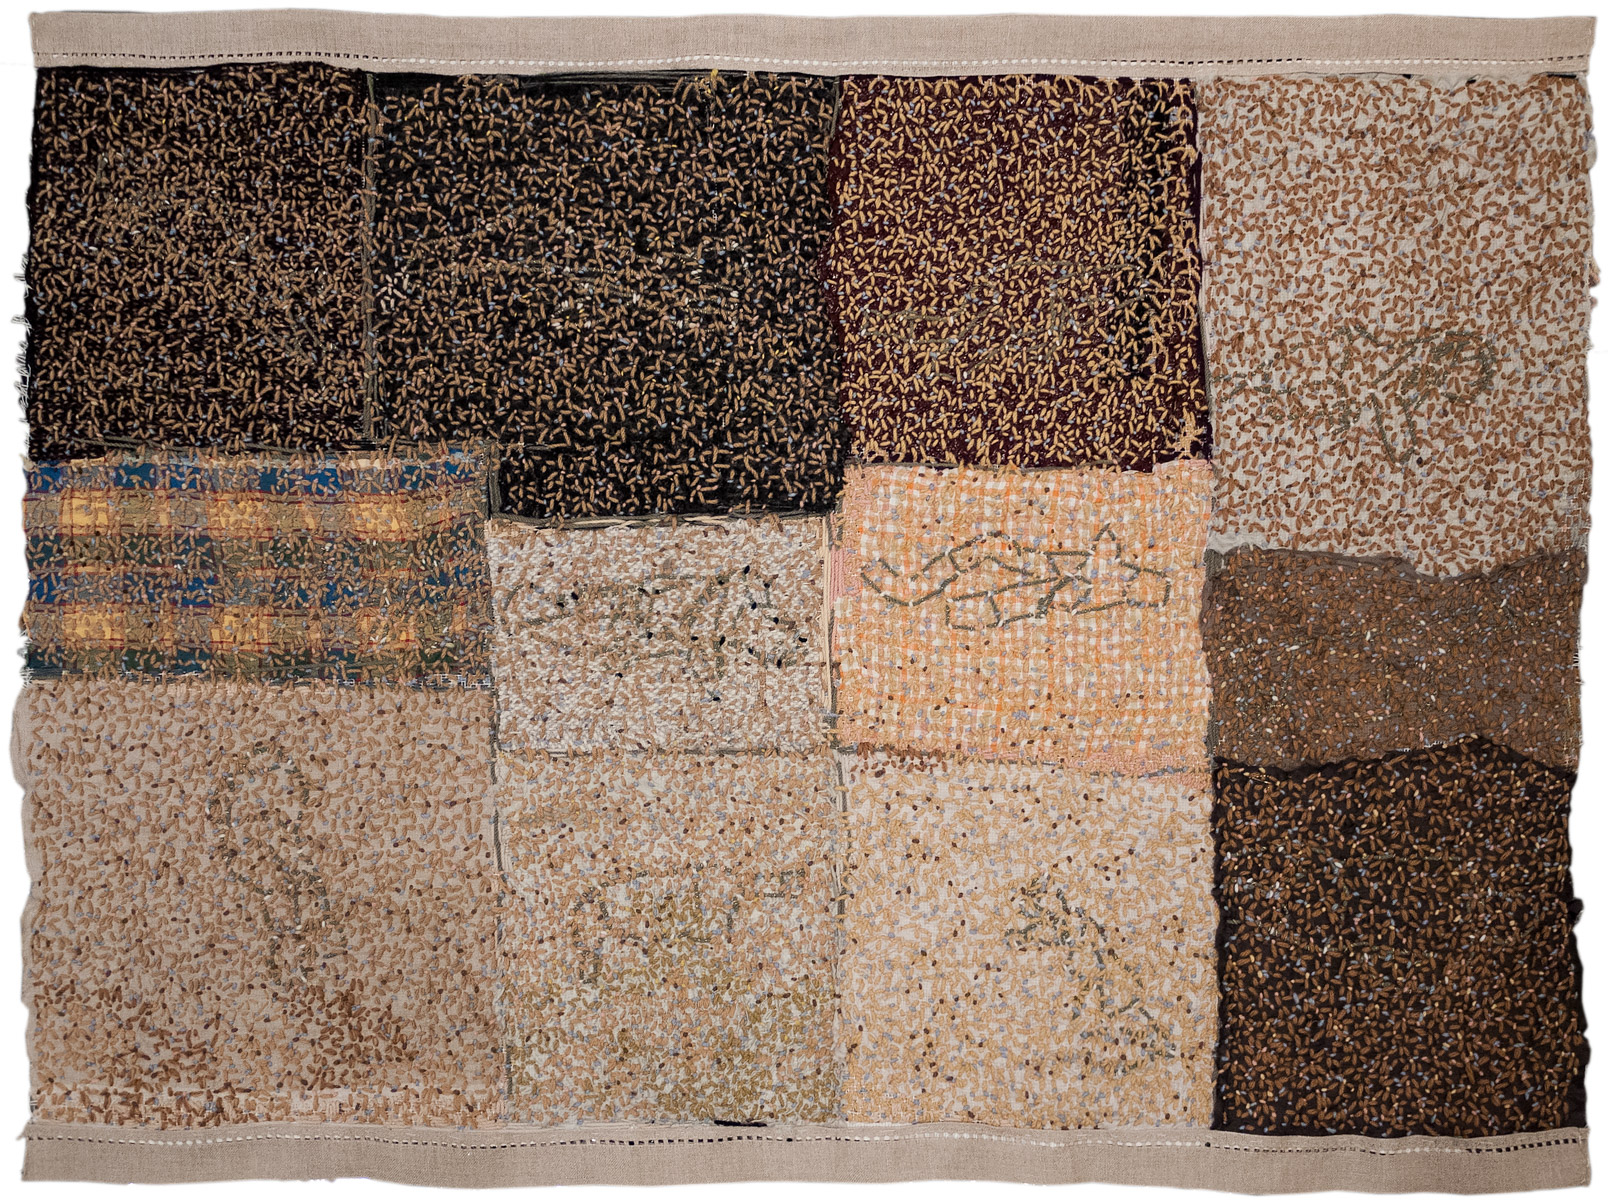 Filipe Rocha da Silva, Fragments of Textile from Prato